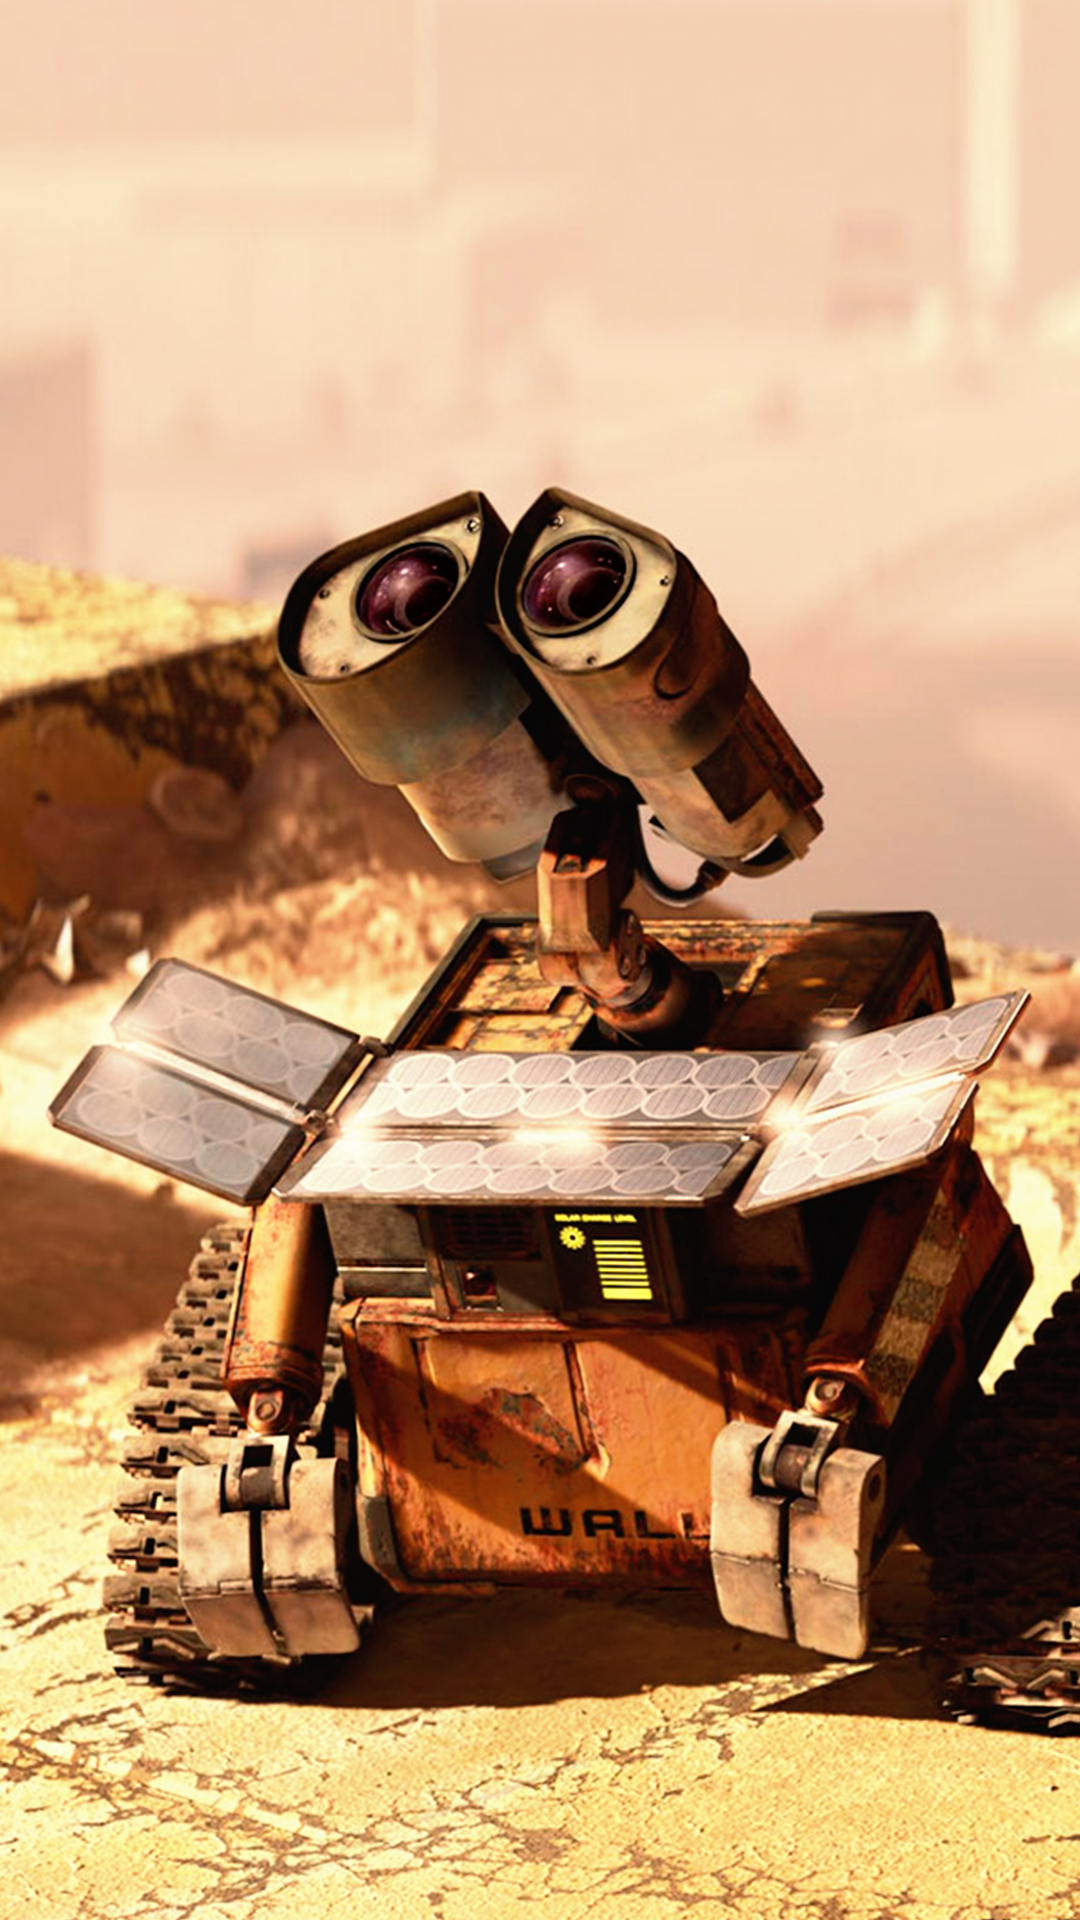 free hd wall e phone wallpaper1124